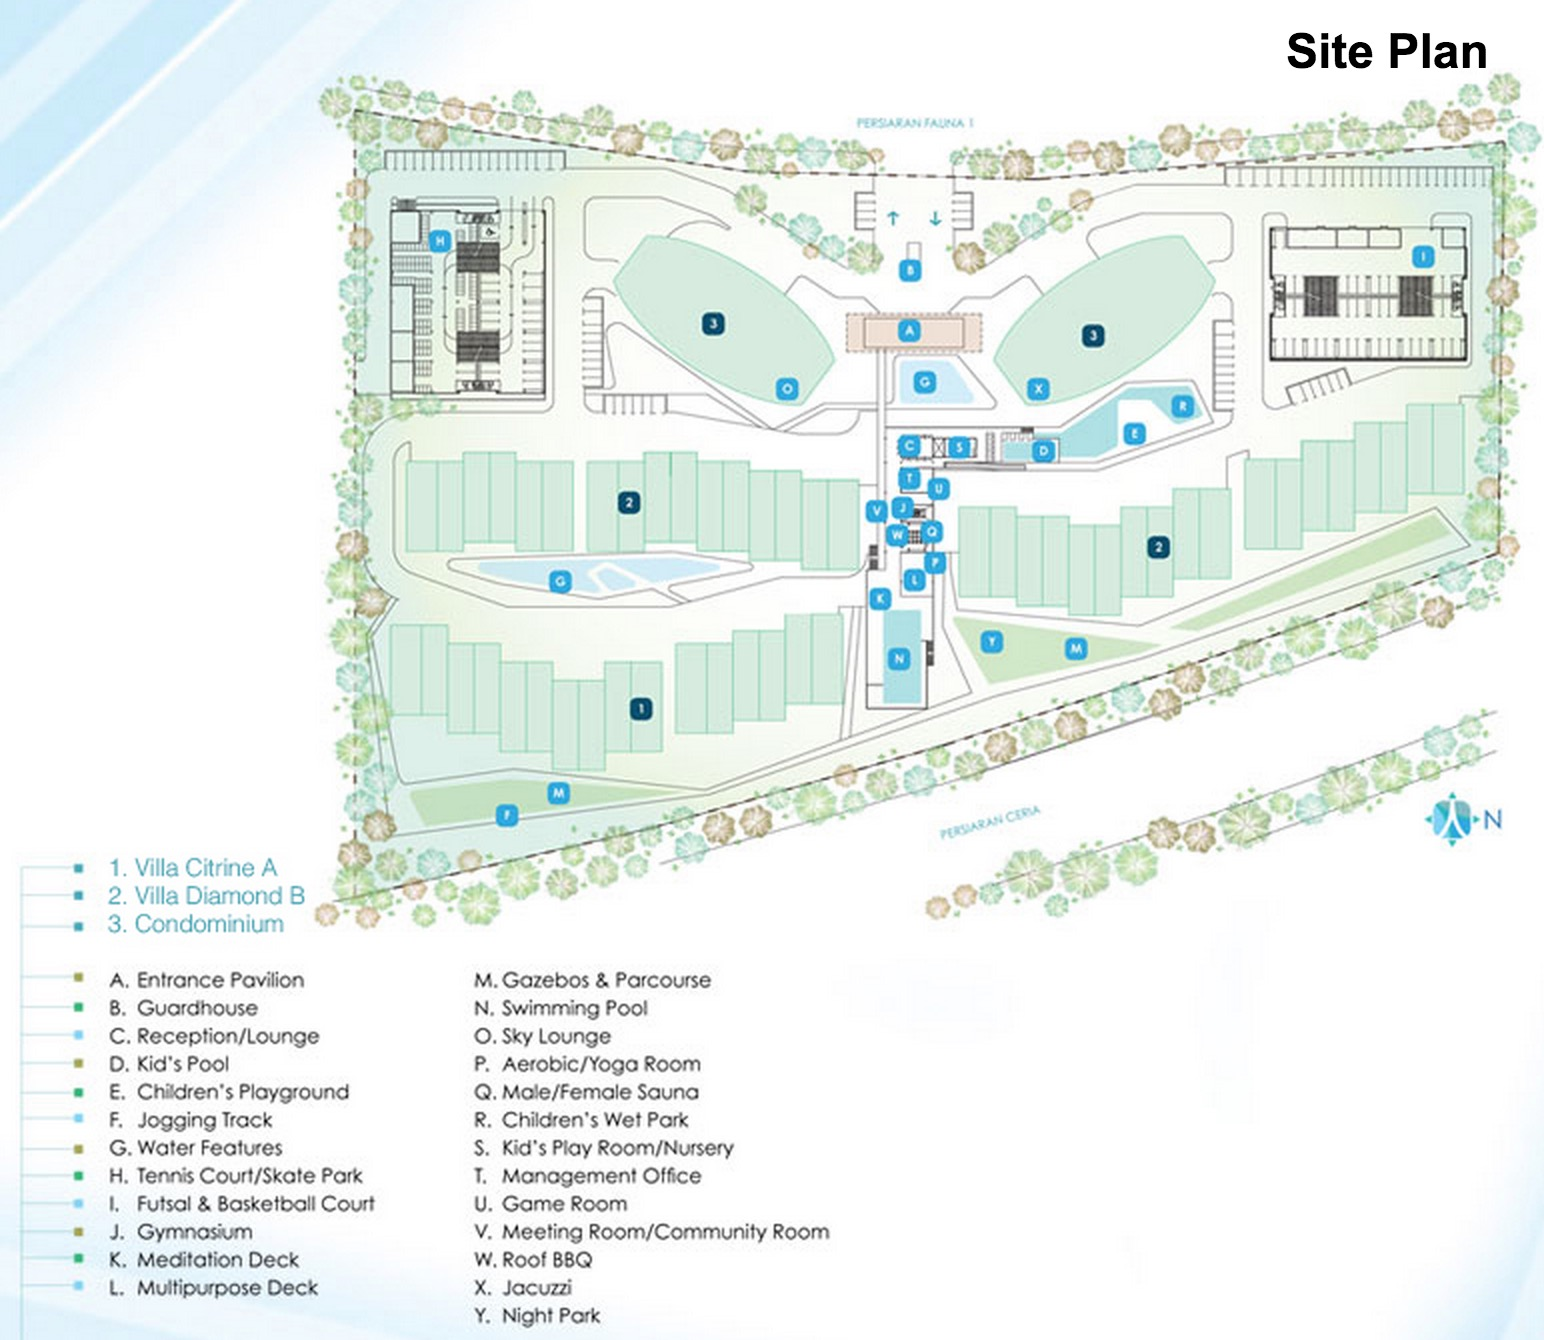 Site Plan of Cristal Residence